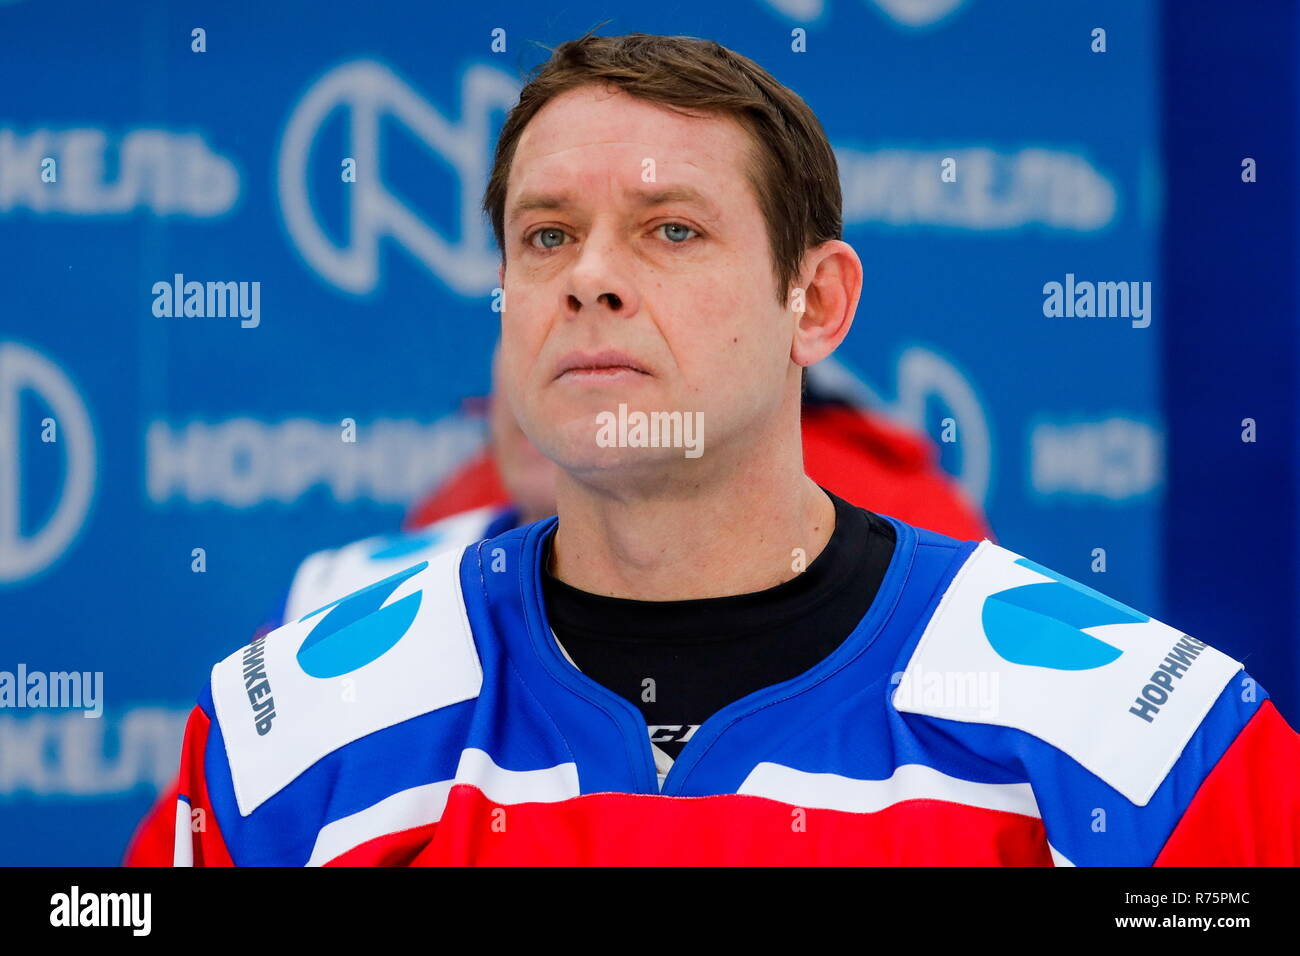 Russia. 08th Dec, 2018. MOSCOW REGION, RUSSIA - DECEMBER 8, 2018: World Legends Hockey League President Pavel Bure in action during the 5th Legends Cup ice hockey tournament at the Luzhki Club ice rink; held for retired senior ice hockey players, this year's tournament marks the 100th birth anniversary of Soviet ice hockey player and coach Anatoly Tarasov (1918-1995). Mikhail Japaridze/TASS Credit: ITAR-TASS News Agency/Alamy Live News - Stock Image